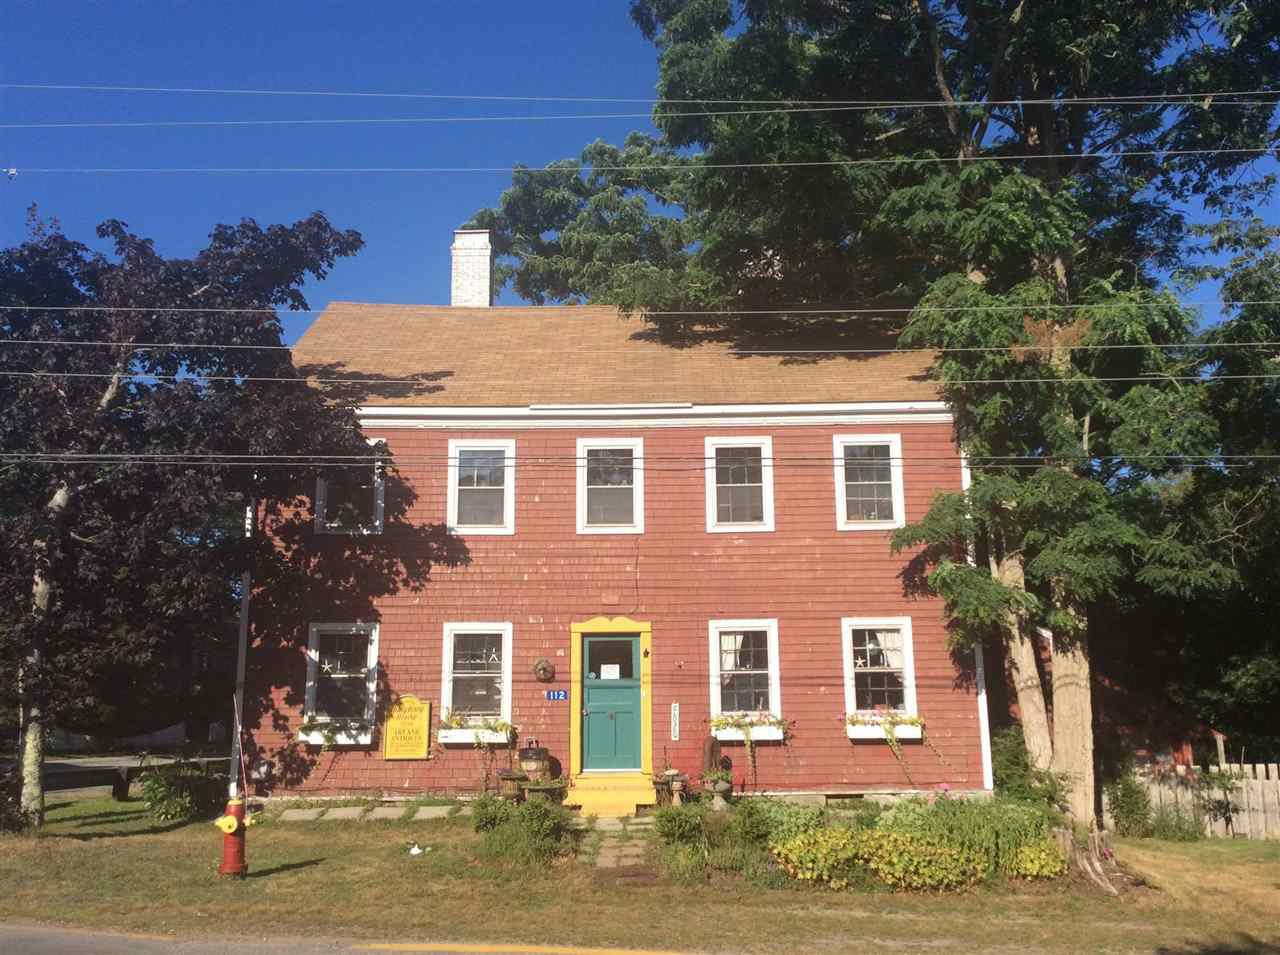 Main Photo: 112 Water Street in Shelburne: 407-Shelburne County Residential for sale (South Shore)  : MLS®# 202020803